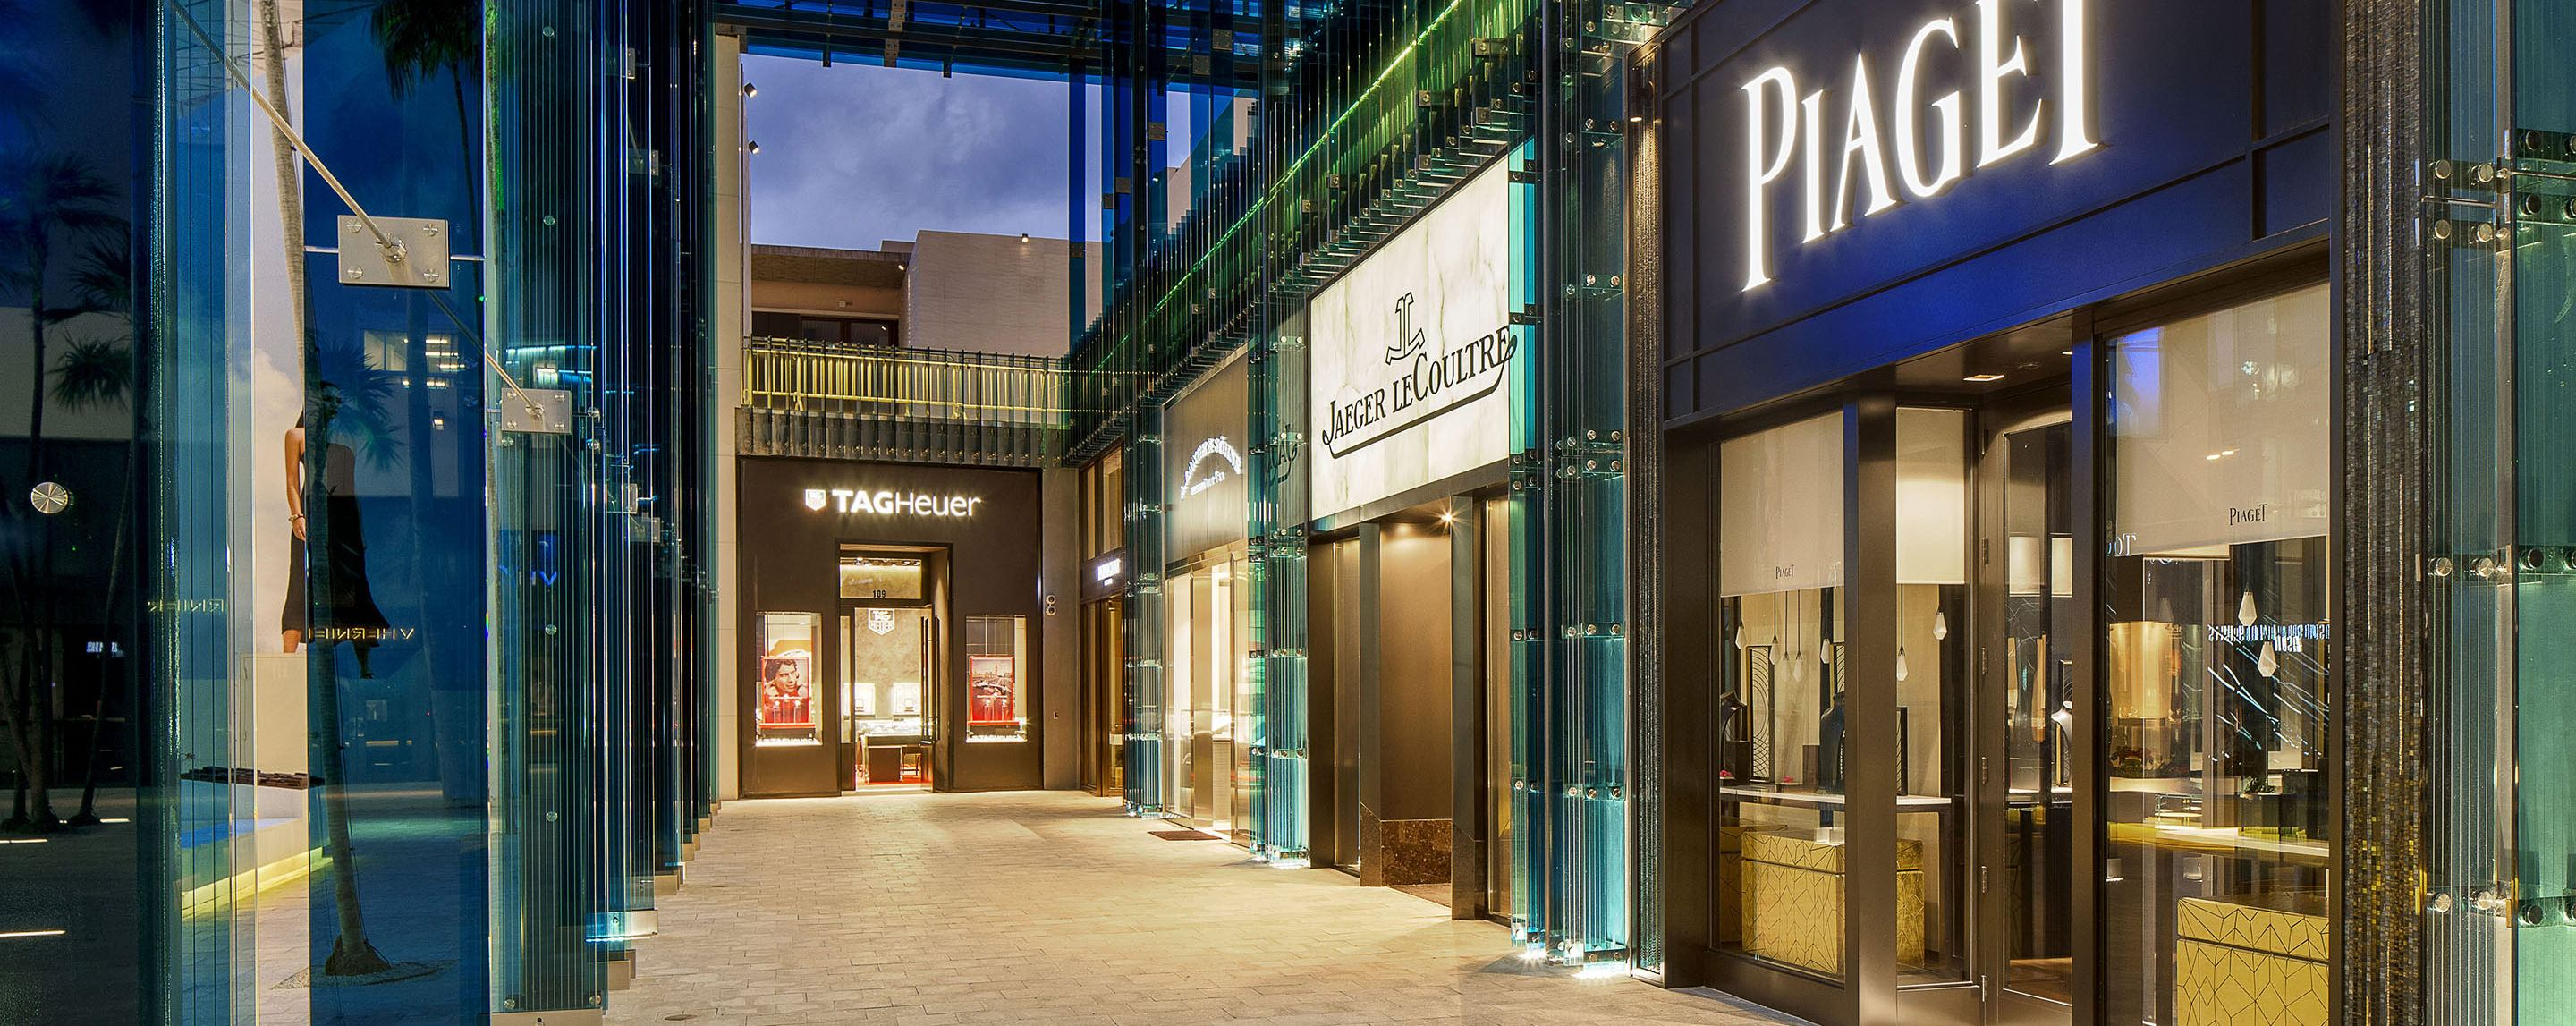 Several storefronts line a well lit indoor mall, including Piaget and Tag Heuer.